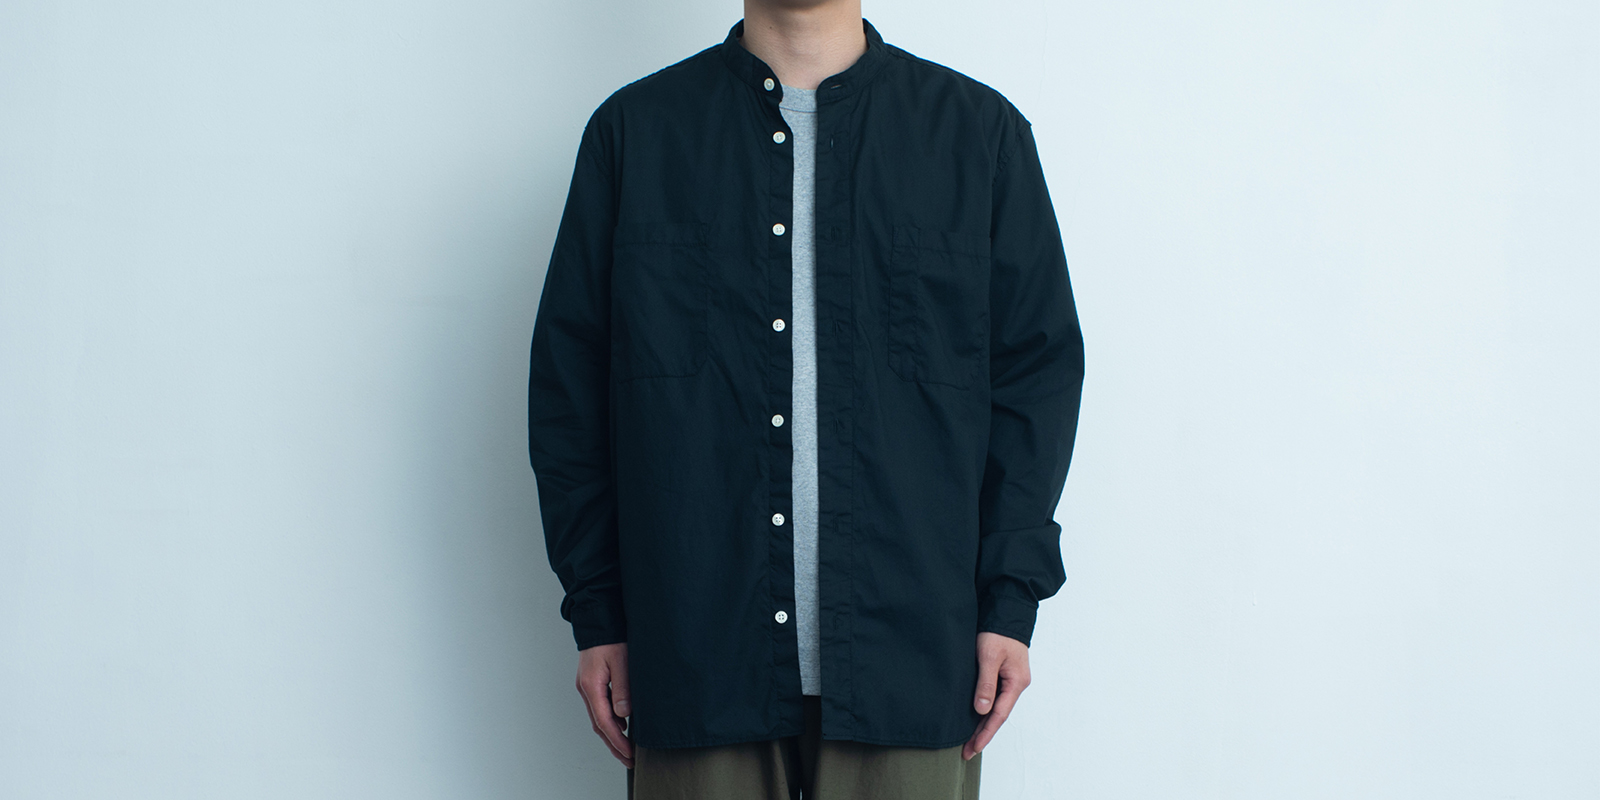 d 206 STAND SHIRT・BLACK・XL